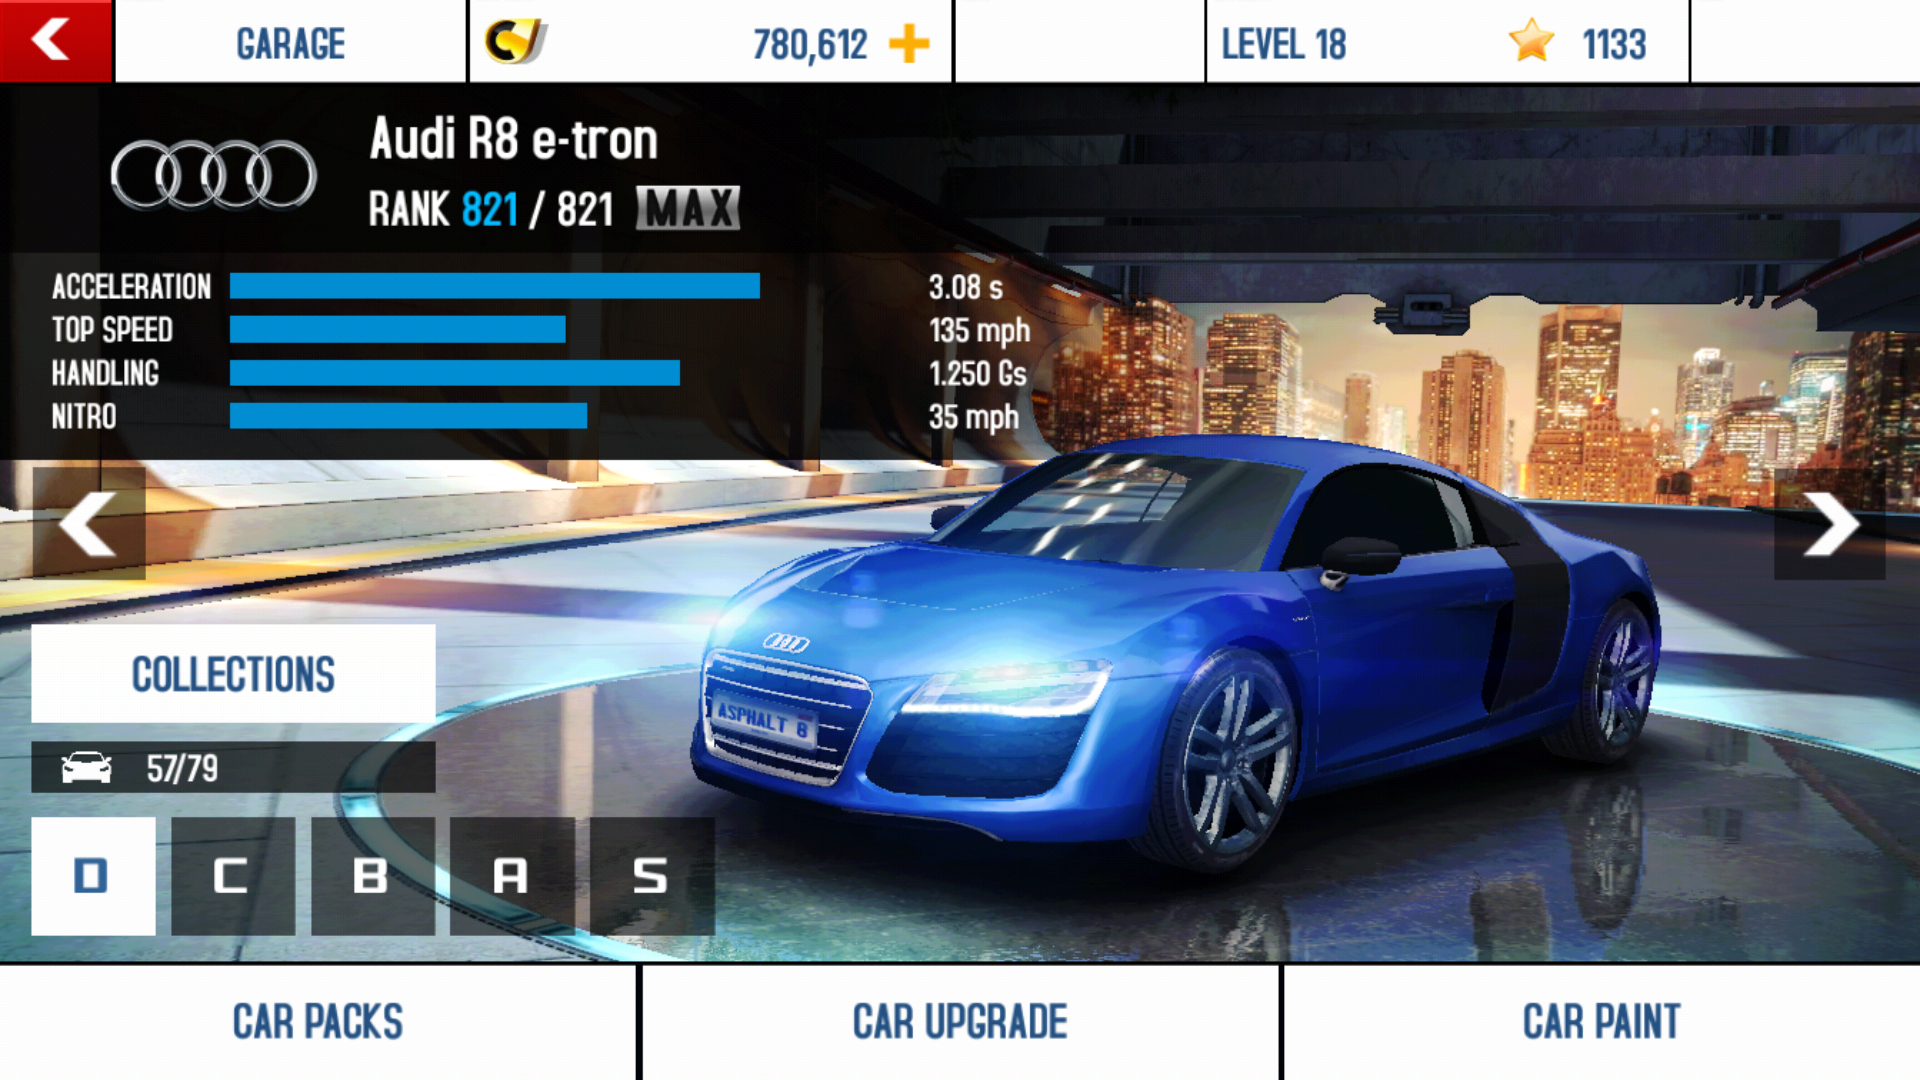 Audi_R8_e-tron_maxed_out